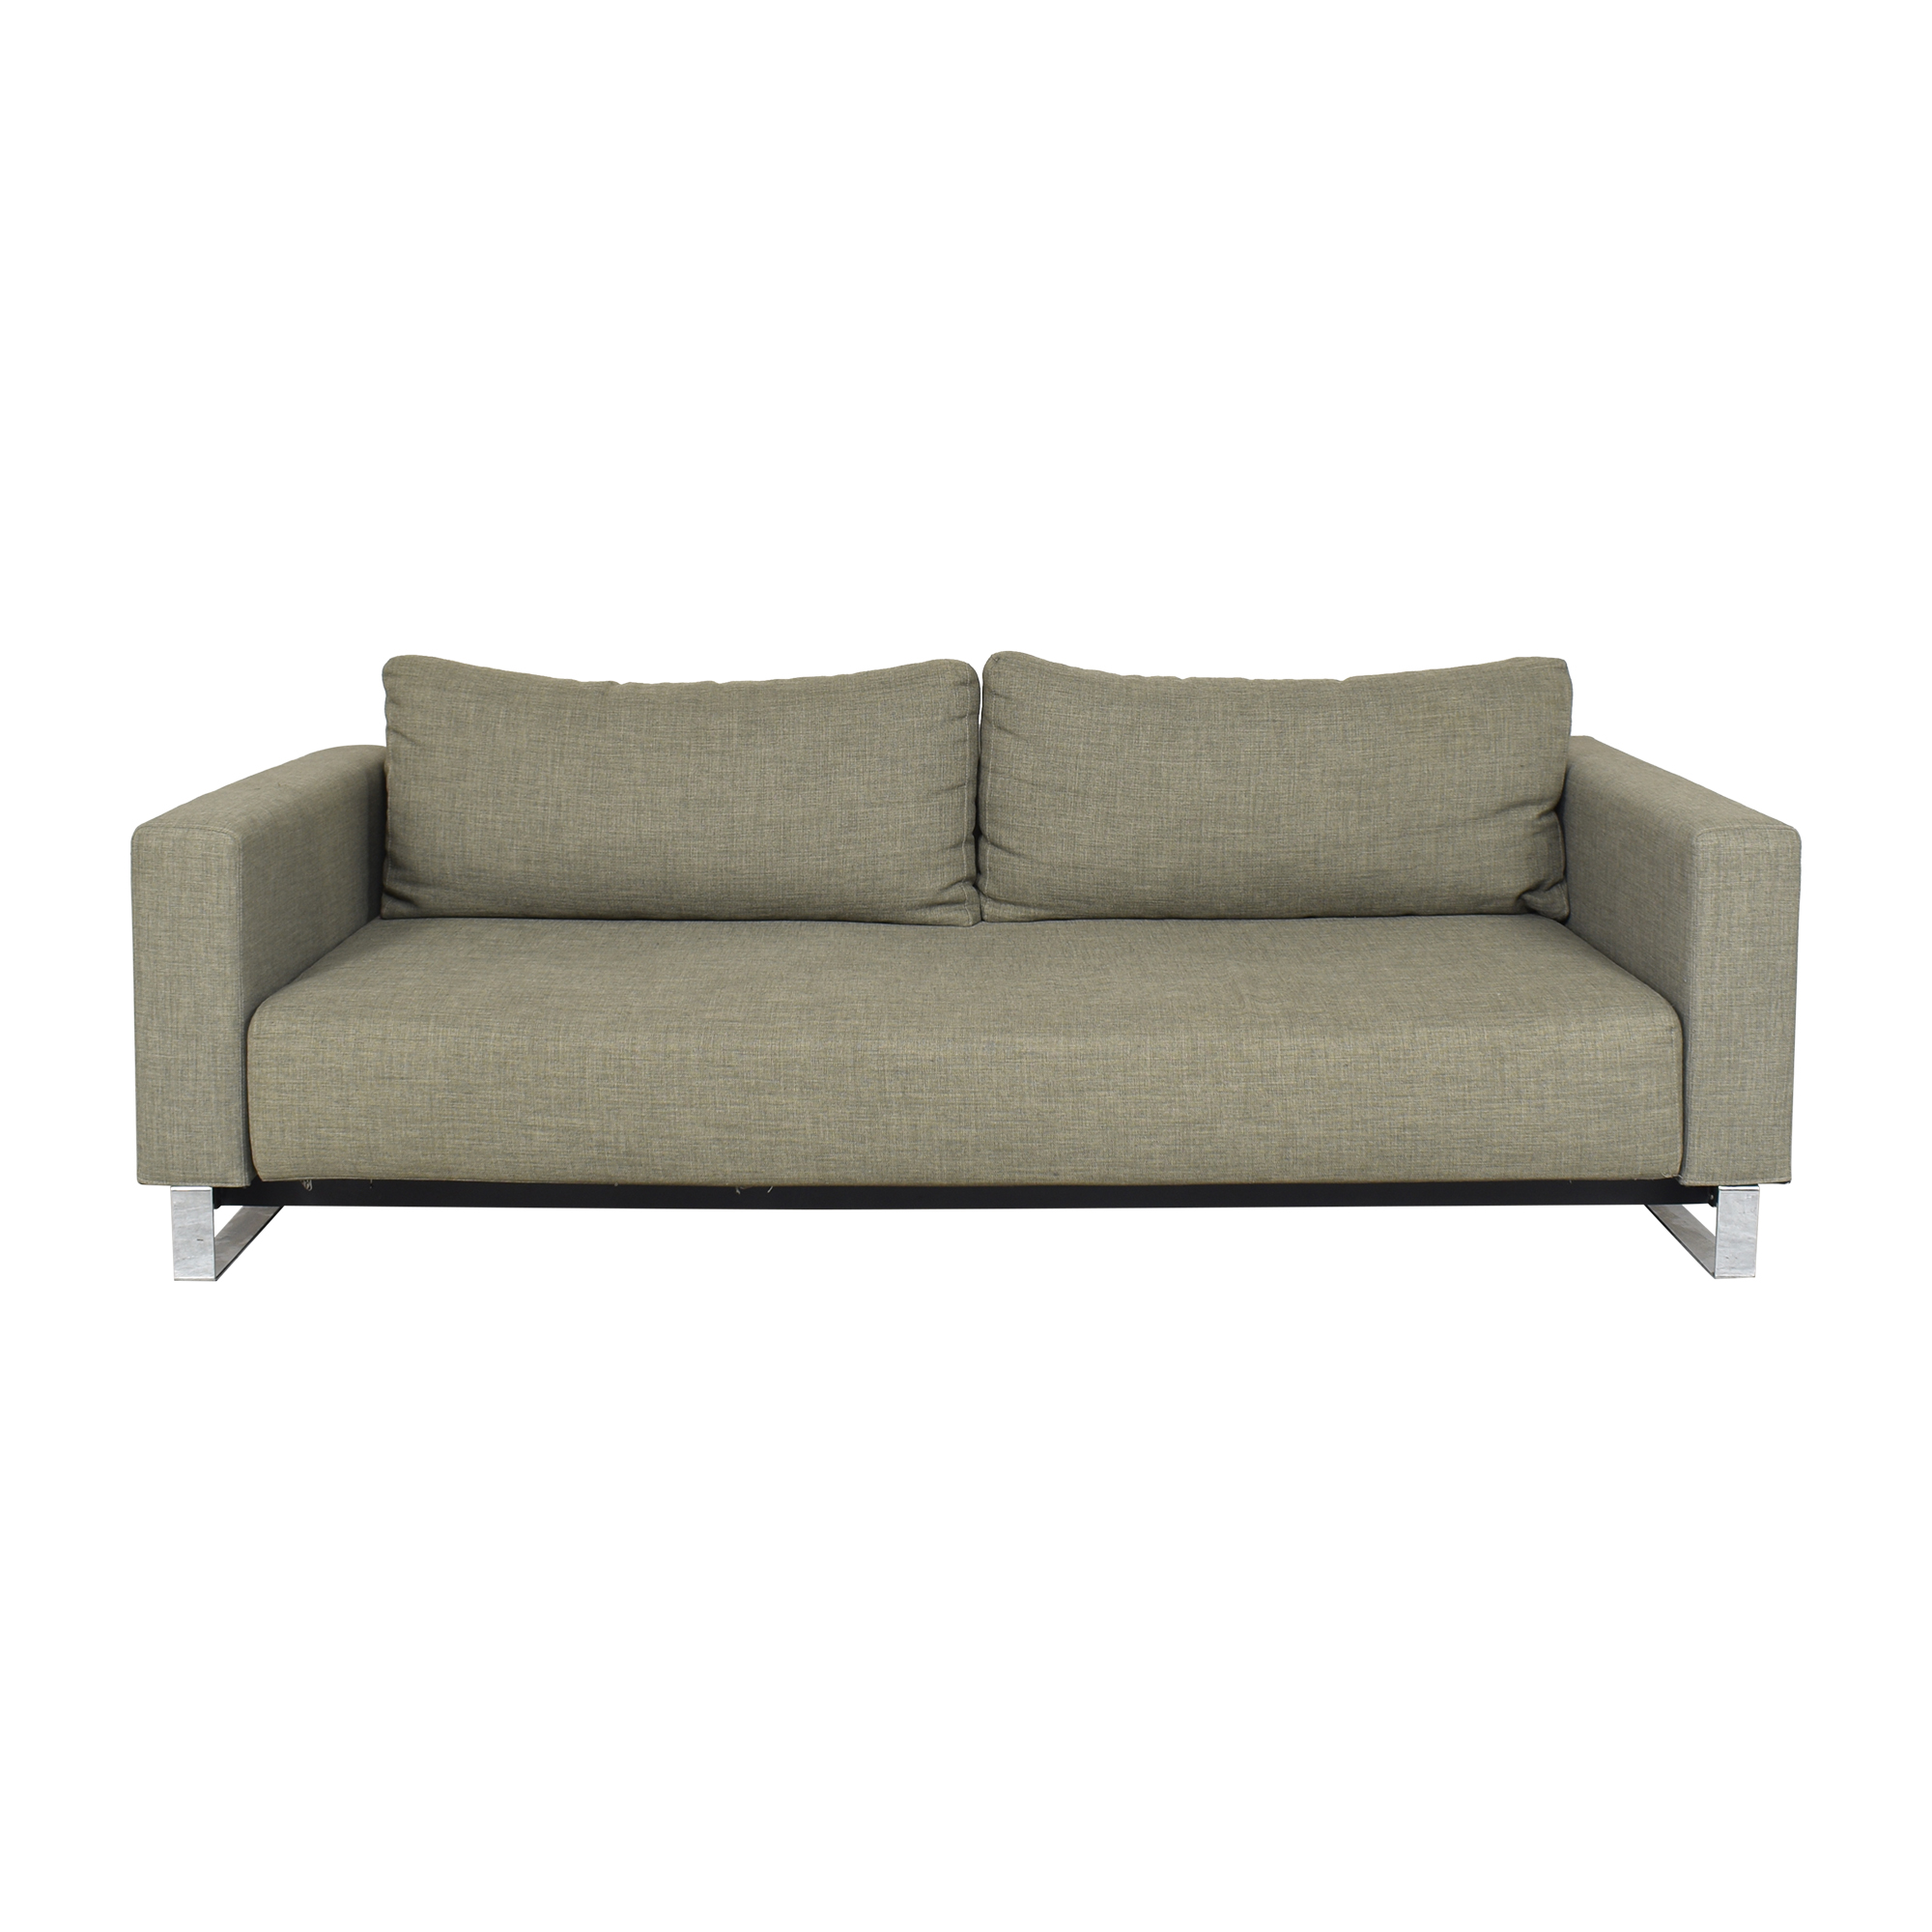 buy Innovation Living Innovation Living Cassius D.E.L. Sofa Bed online